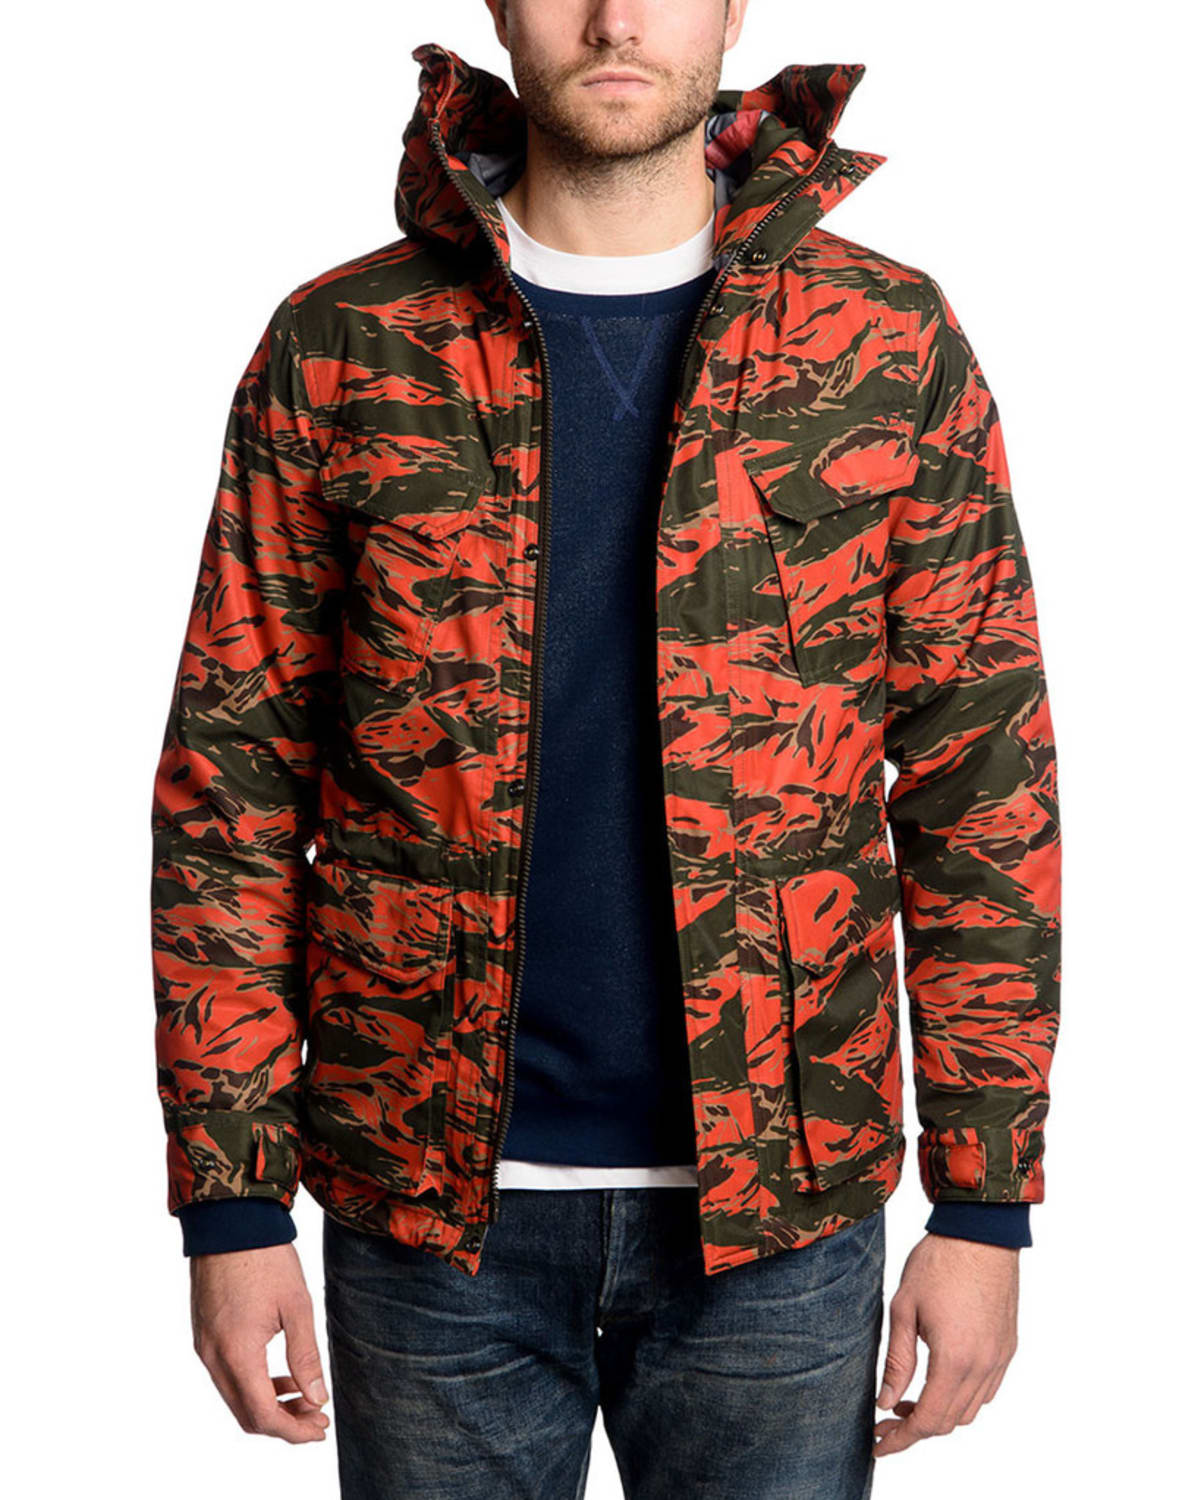 The Best Winter Jackets On Sale Right Now | Complex